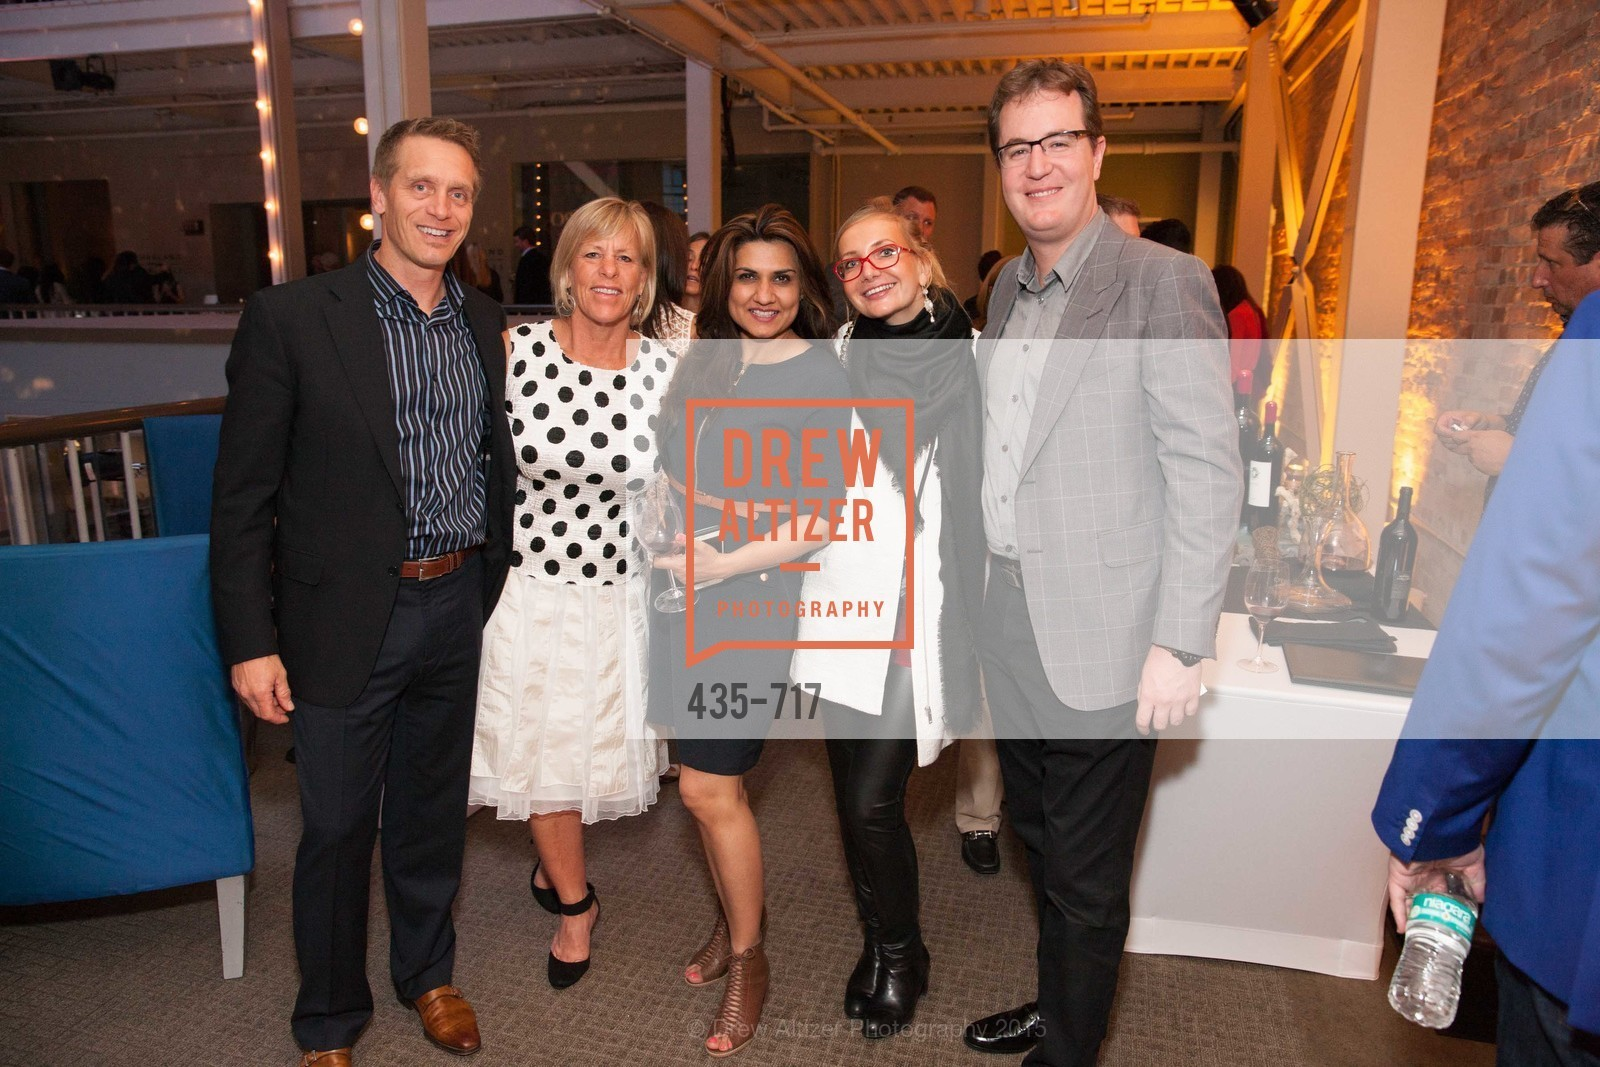 Matt Glerum, Kendra Canning, Asha Saxena, Monica Zukiewicz, David Petrol, YPO Wine Festival, US, May 12th, 2015,Drew Altizer, Drew Altizer Photography, full-service agency, private events, San Francisco photographer, photographer california